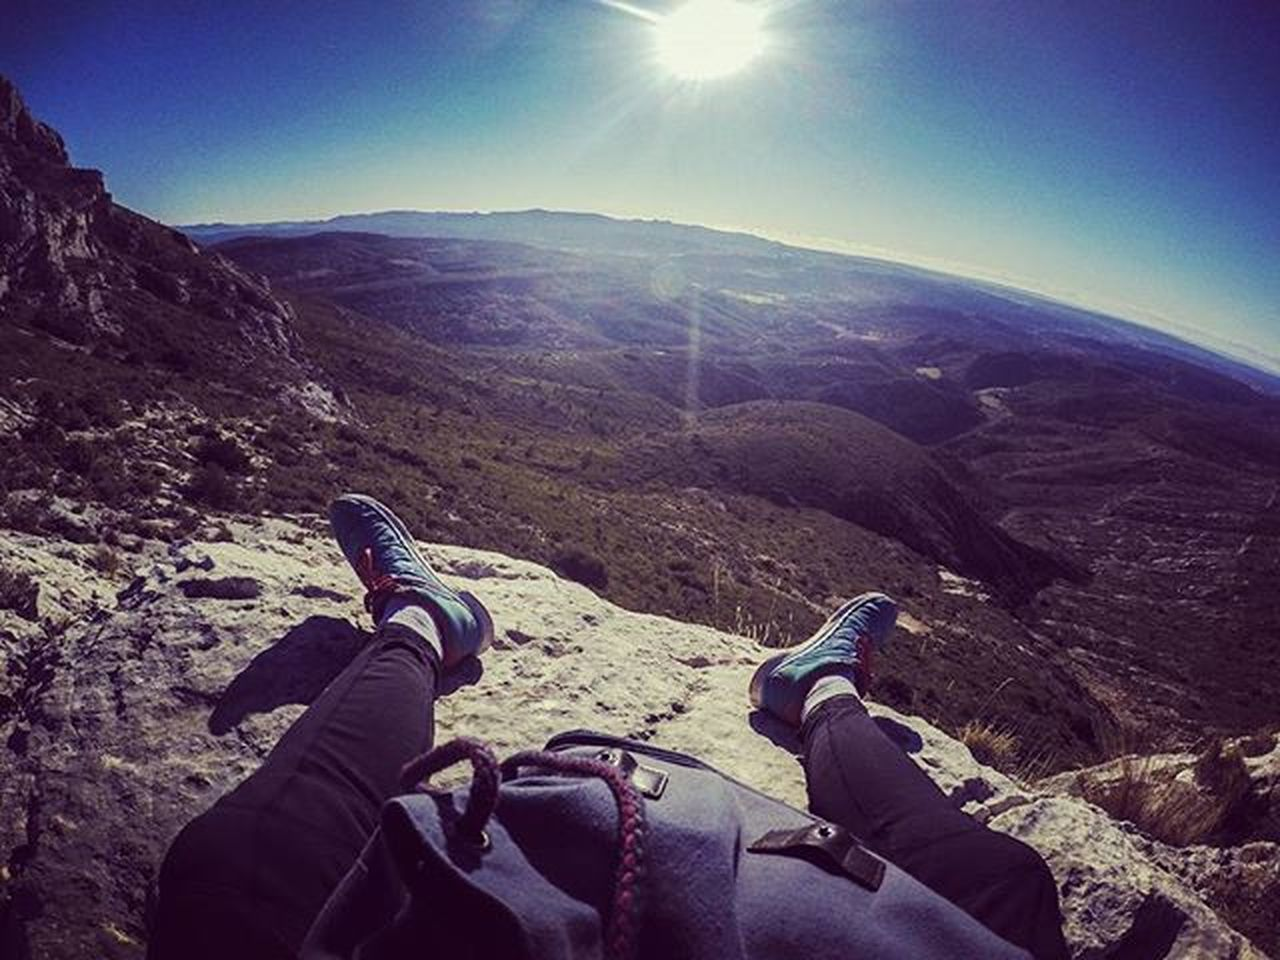 - ➖ - N u m b e r 6 - ➖ - R u n n i n g - H a r d l o p e n - ➖ Montagnestvictoire Provence Aixenprovence Aix France Gopro Hero4 Trip Sun Amazing Beautiful Peak Mountain Hiking Goprovip Goprodreams Awesome Colorful Colors Sky Summer Nature Erasmus Life Workout hardlopen running gohard